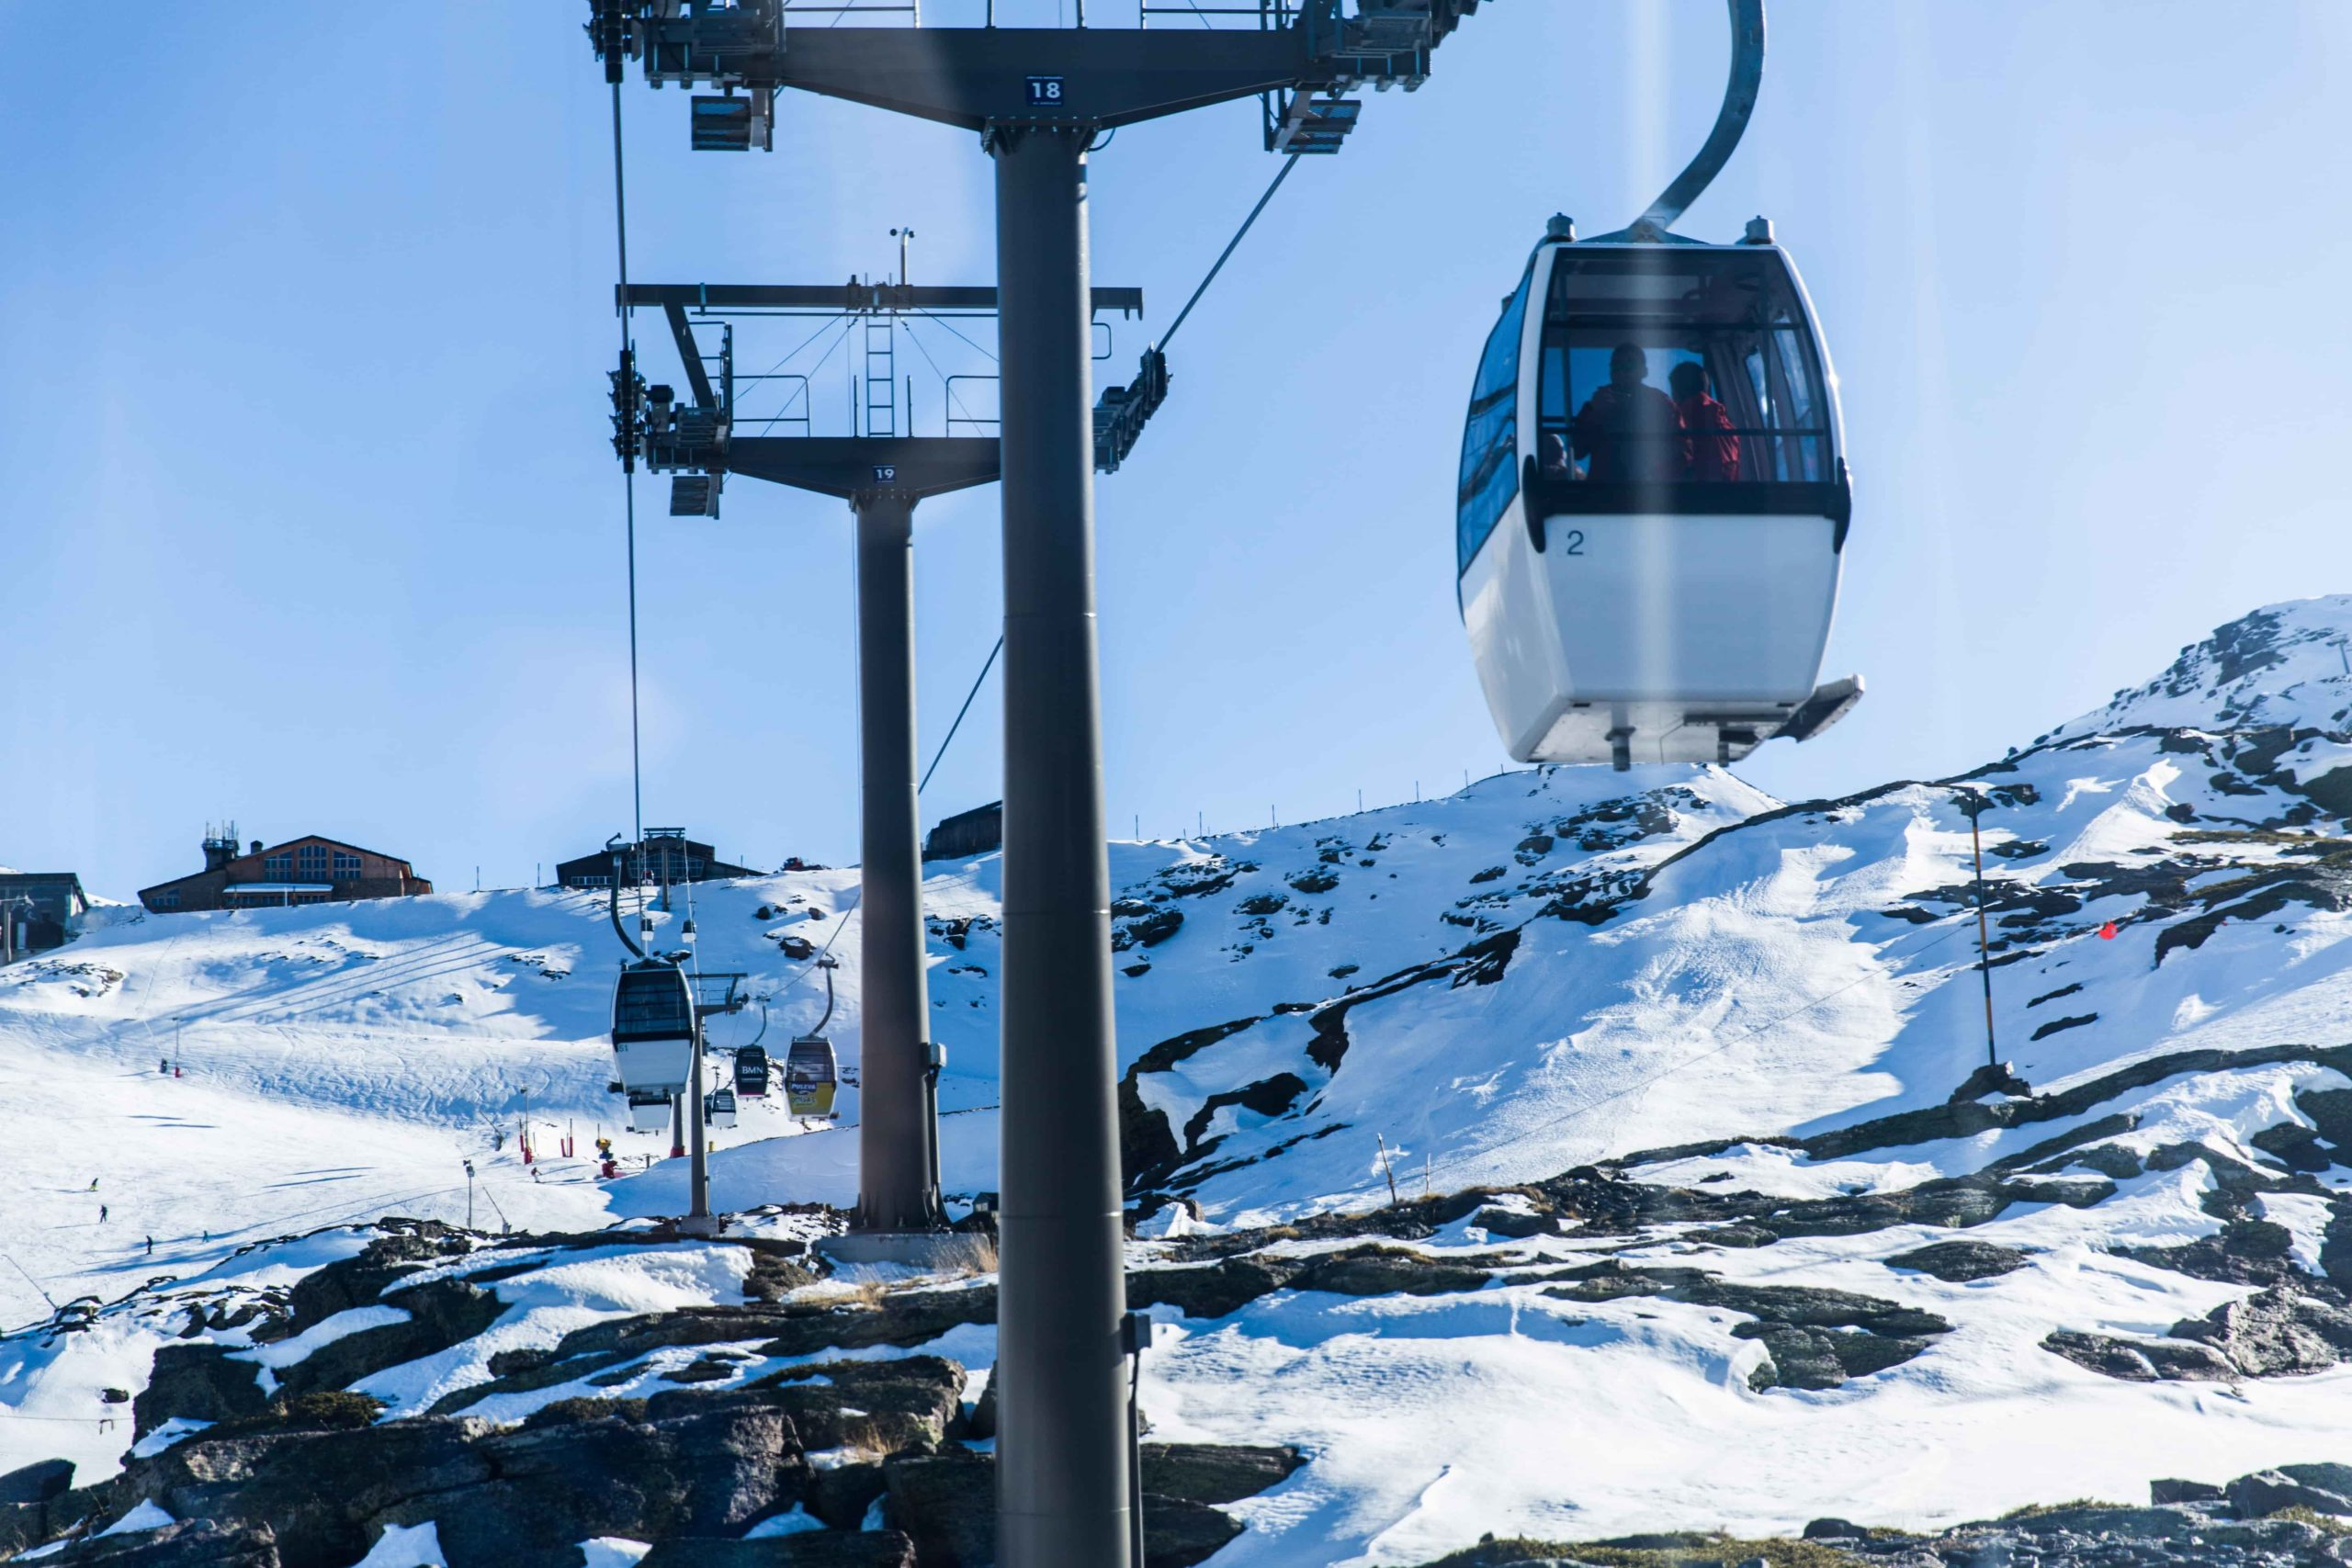 Cable cars in the snowy Alps